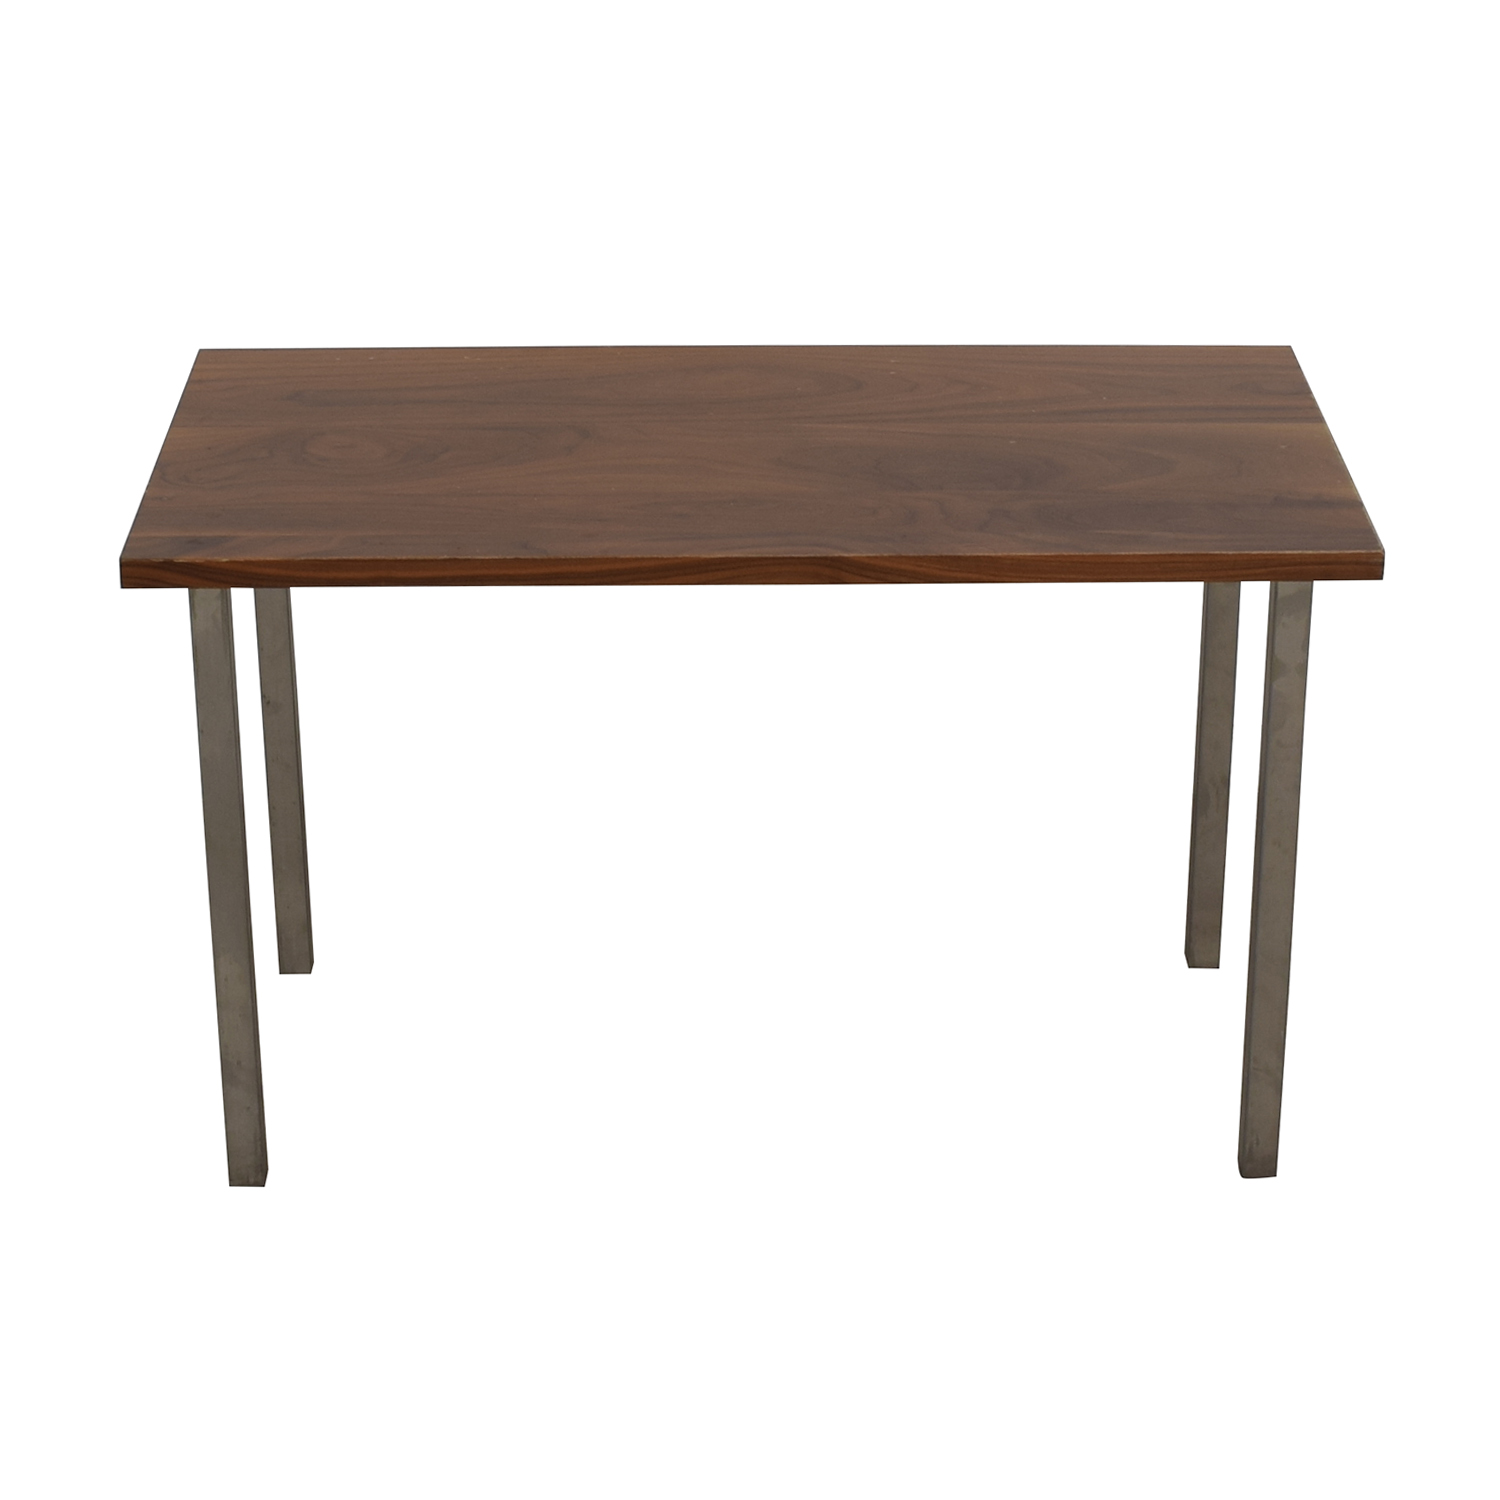 Room & Board Room & Board Rand Natural Wood and Steel Table second hand